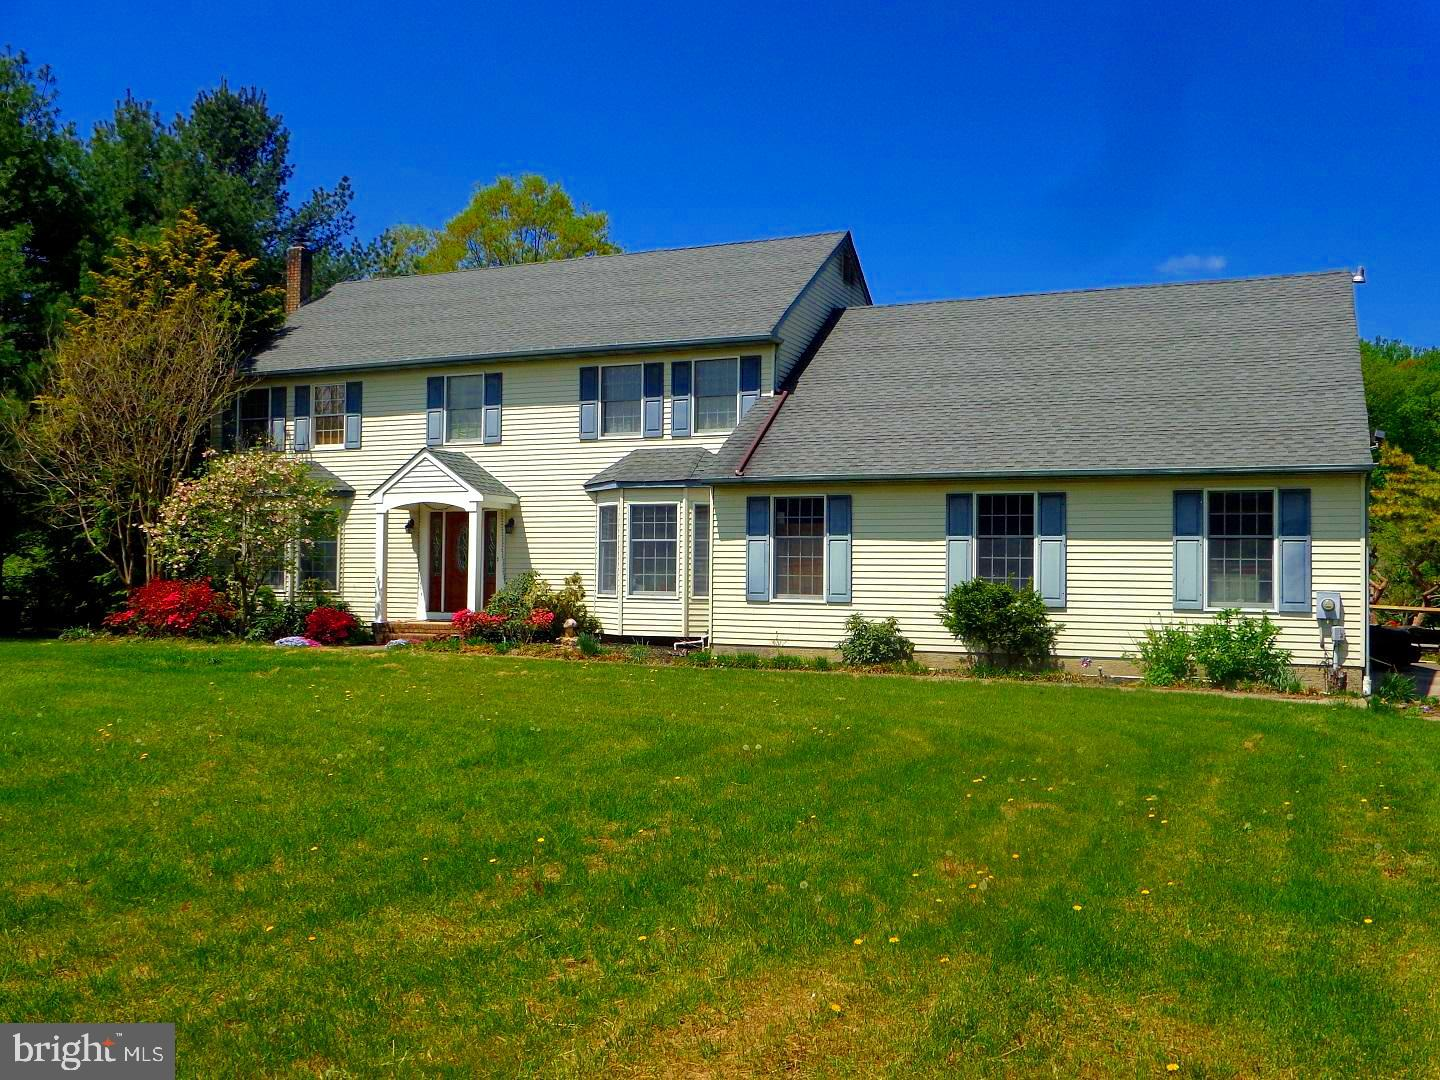 513 SHARP DRIVE, MICKLETON, NJ 08056